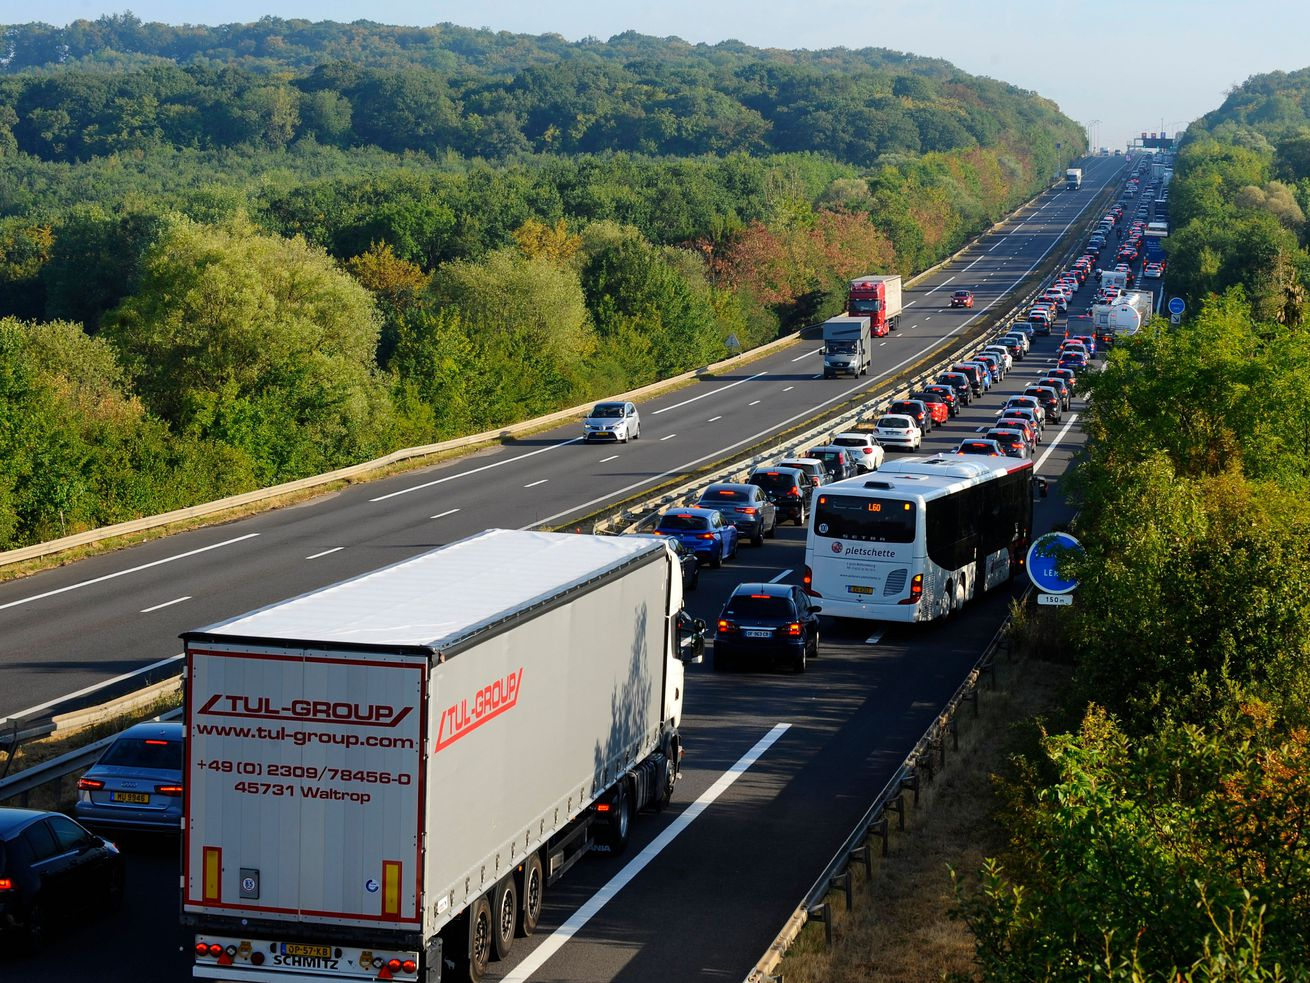 Vehicles stand in a traffic jam near the France-Luxembourg border in Zoufftgen, eastern France on early August 2, 2018, as people are on their way to work.